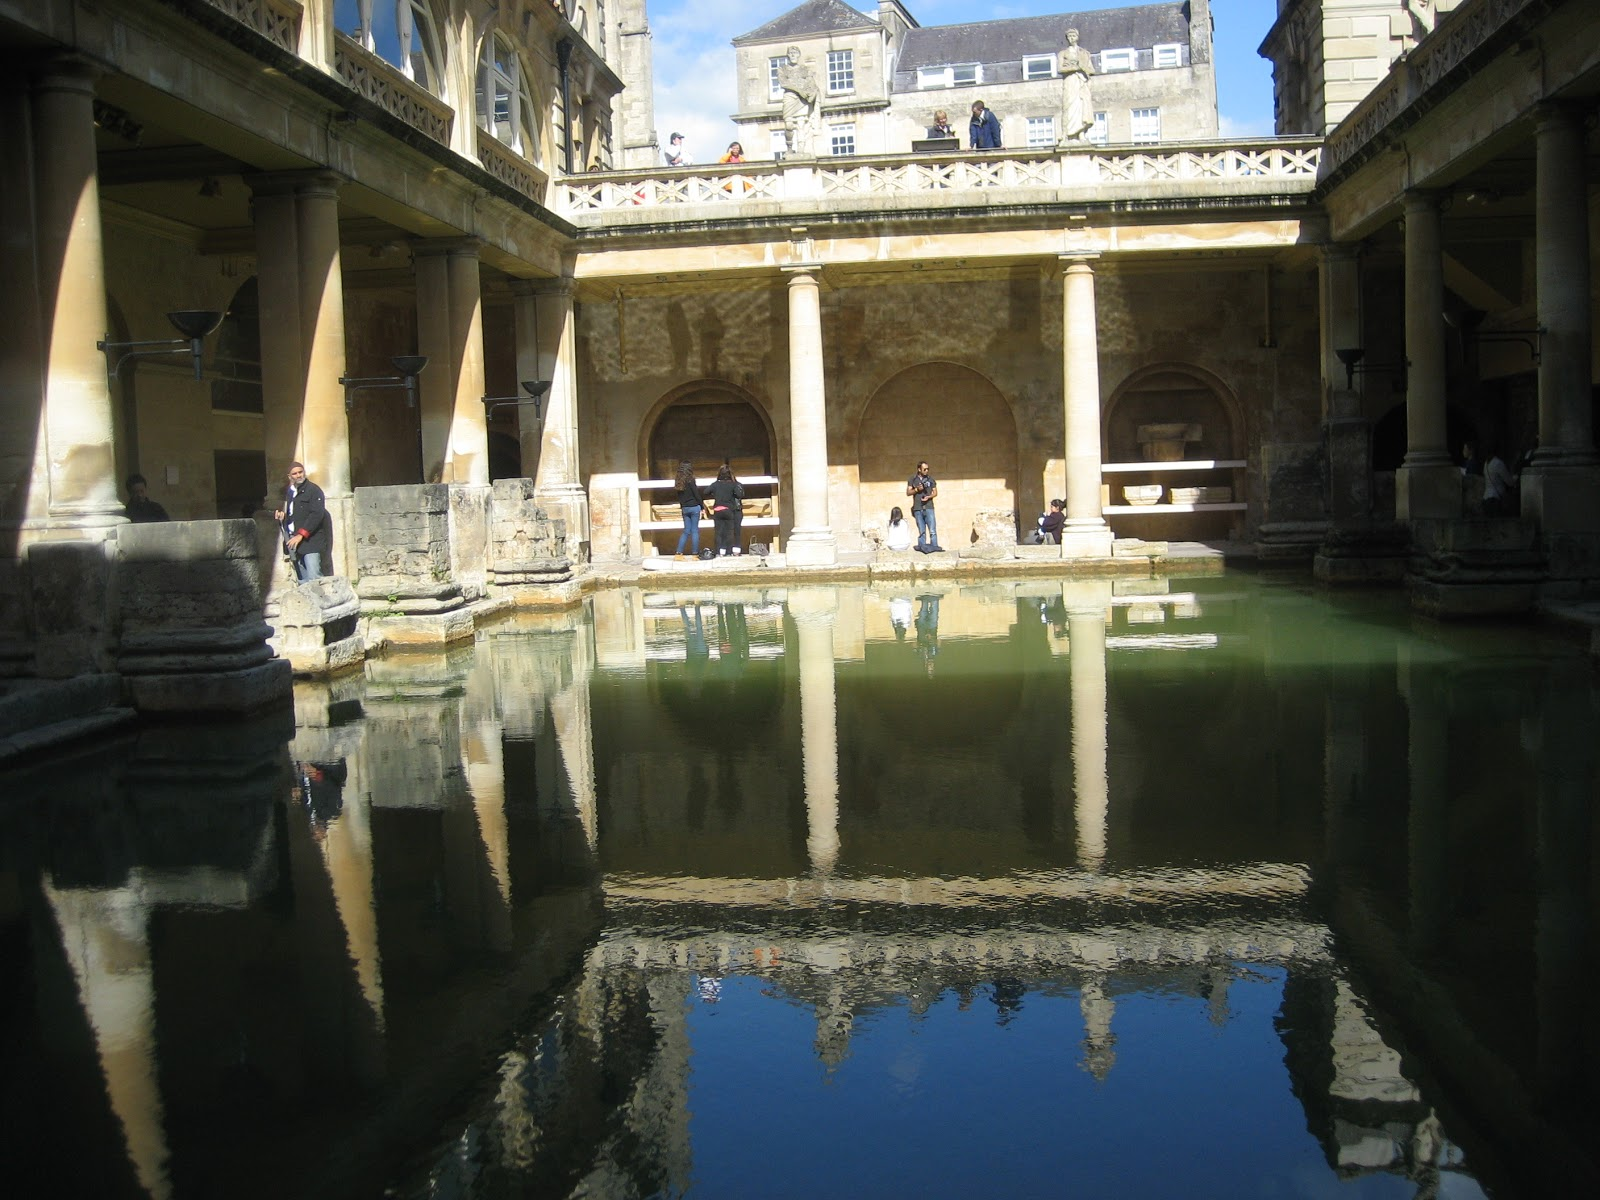 essay on roman baths Unlike most editing & proofreading services, we edit for everything: grammar, spelling, punctuation, idea flow, sentence structure, & more get started now.